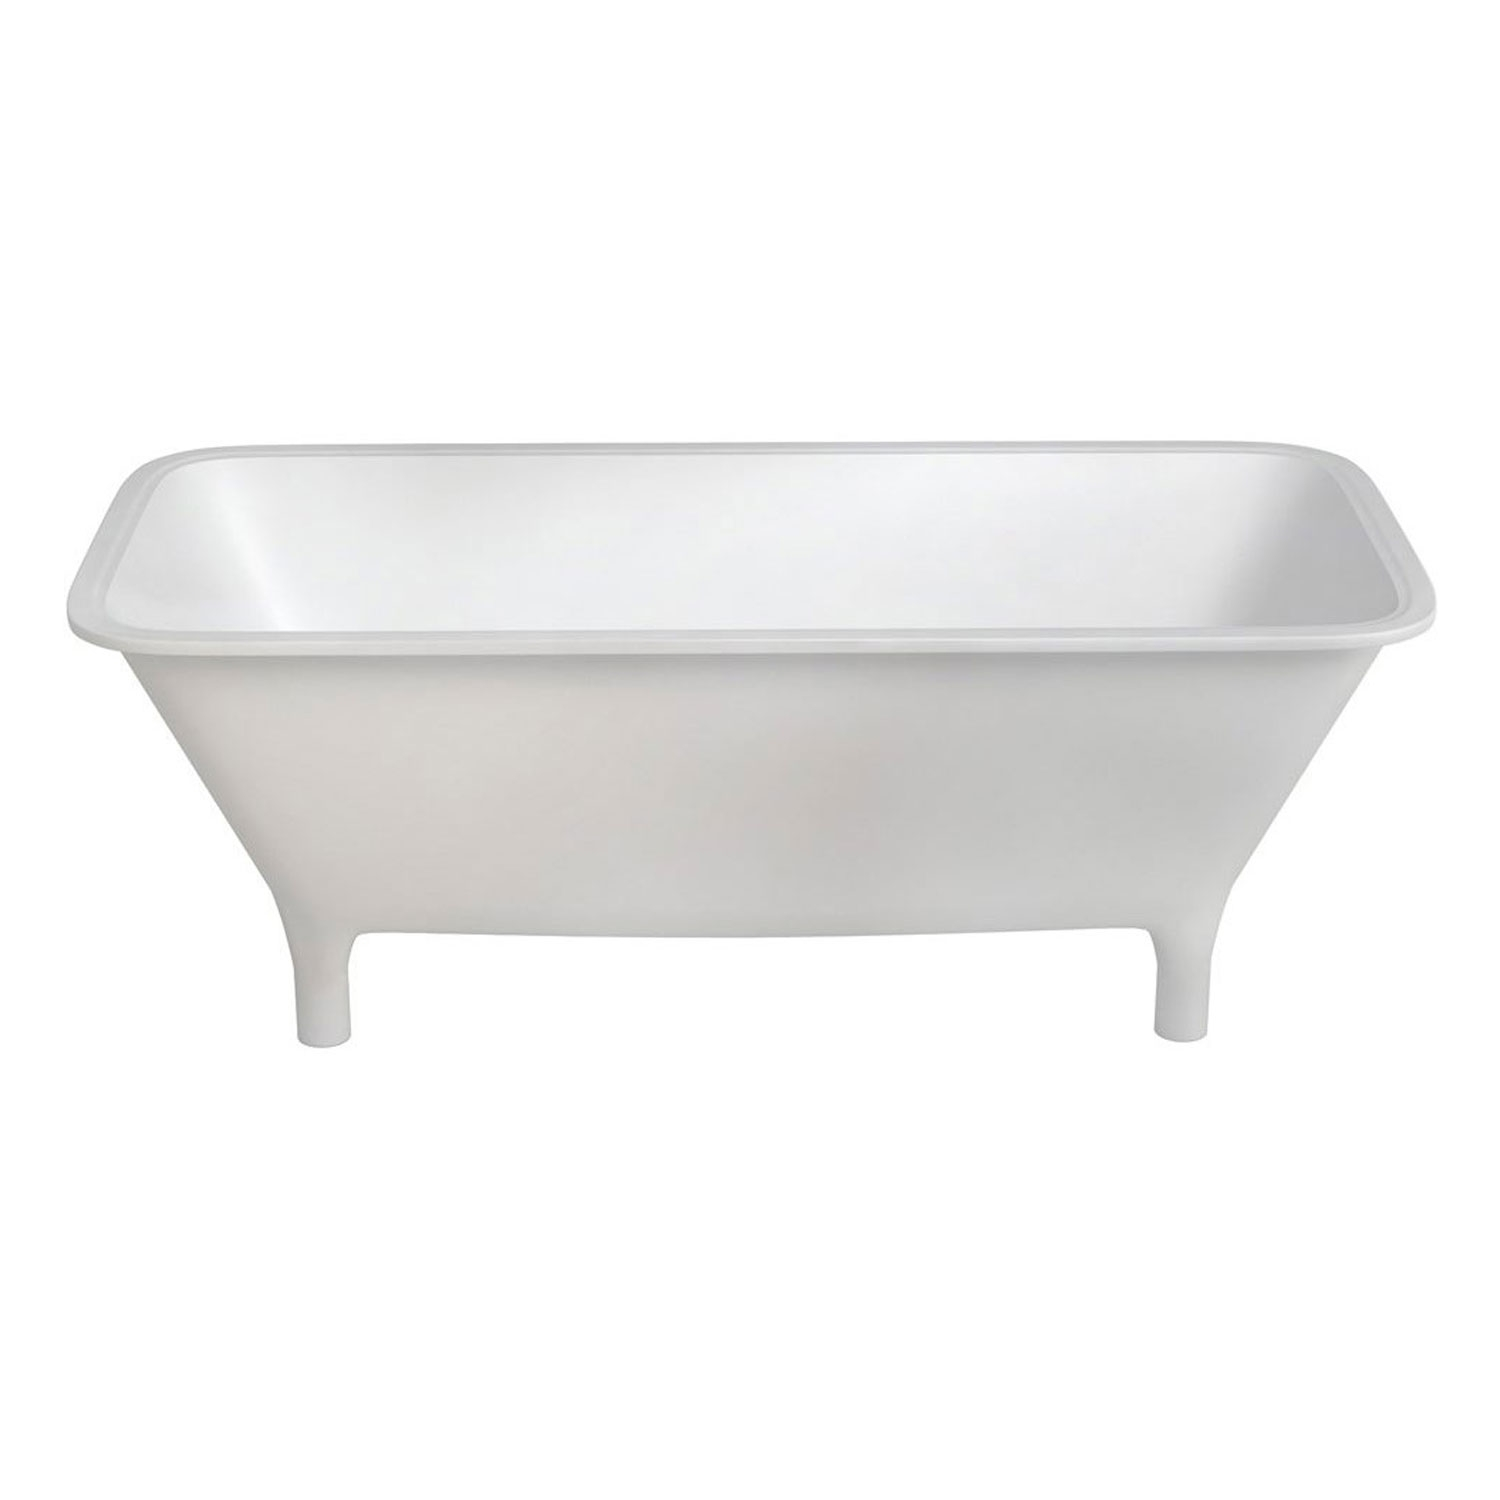 Clearwater Lonio Classical Freestanding Bath 1700mm x 750mm - Natural Stone